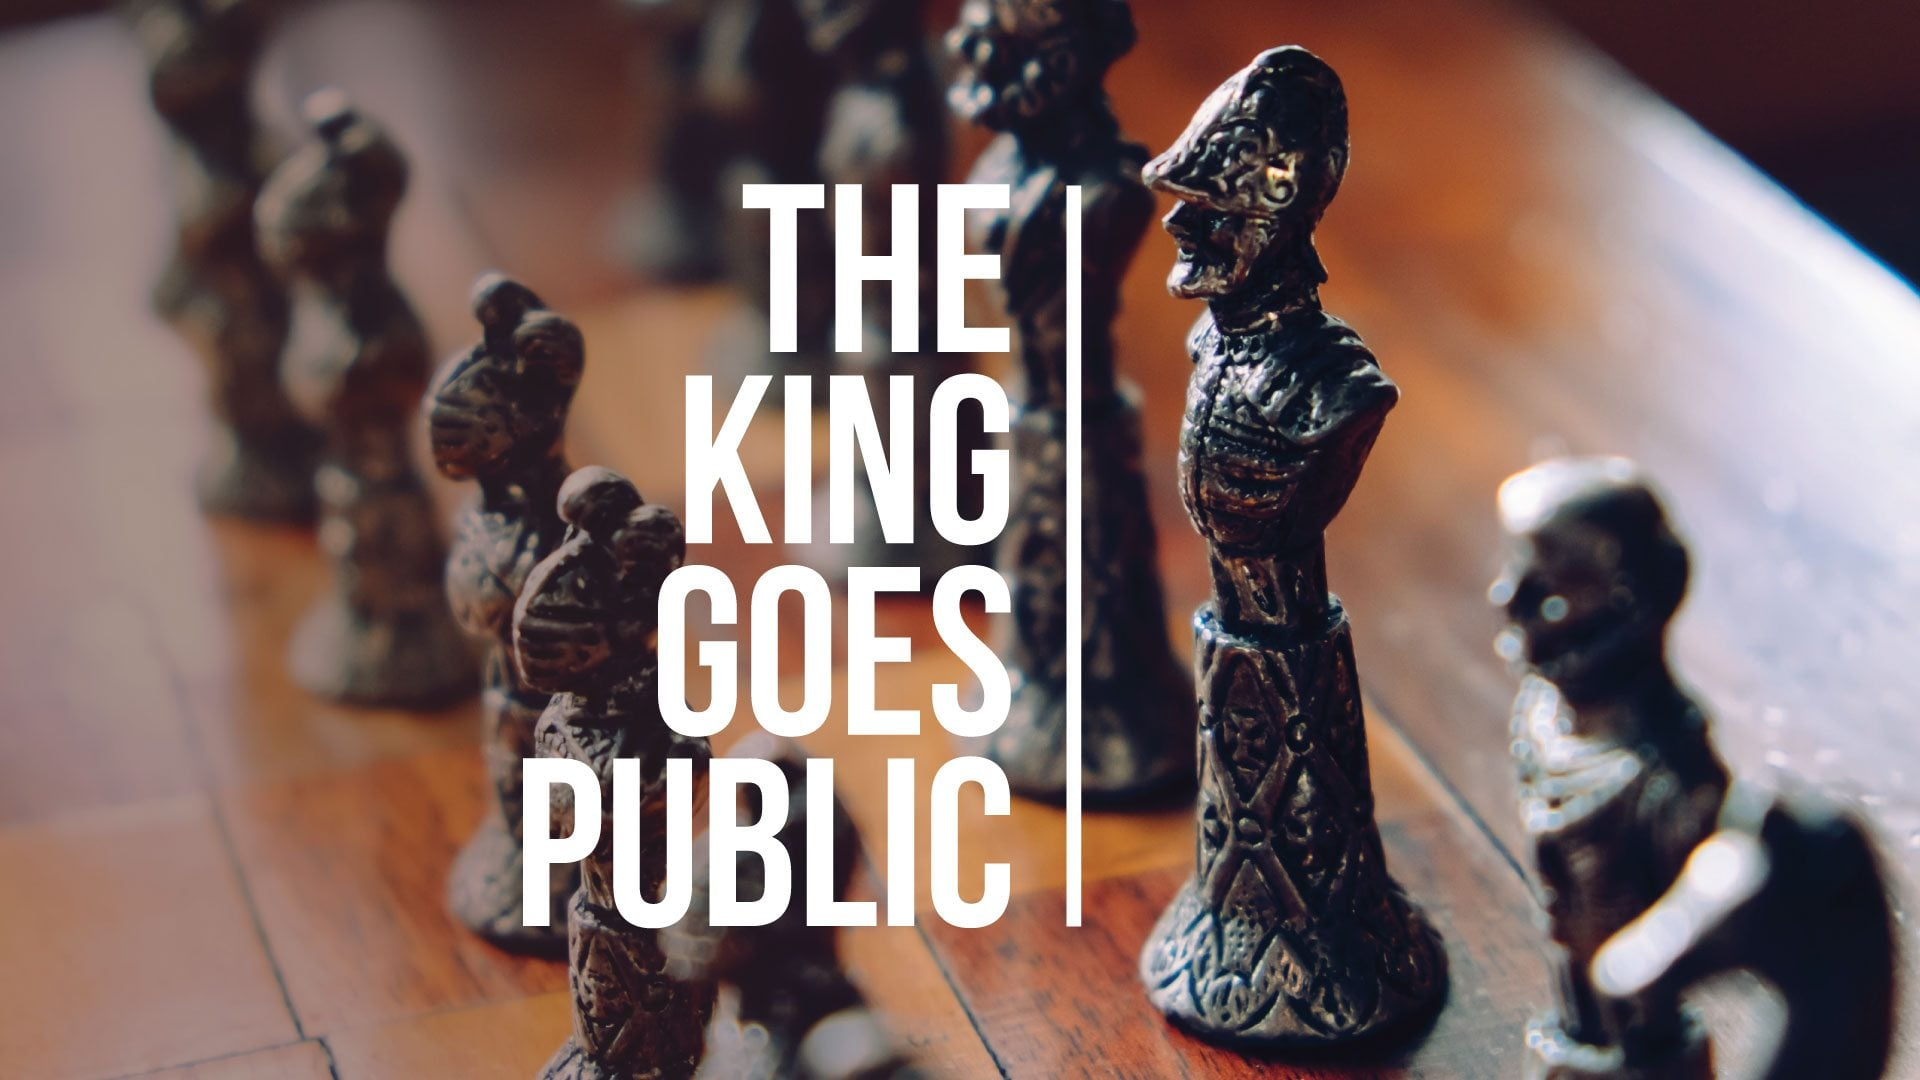 the-king-goes-public-1920x1080